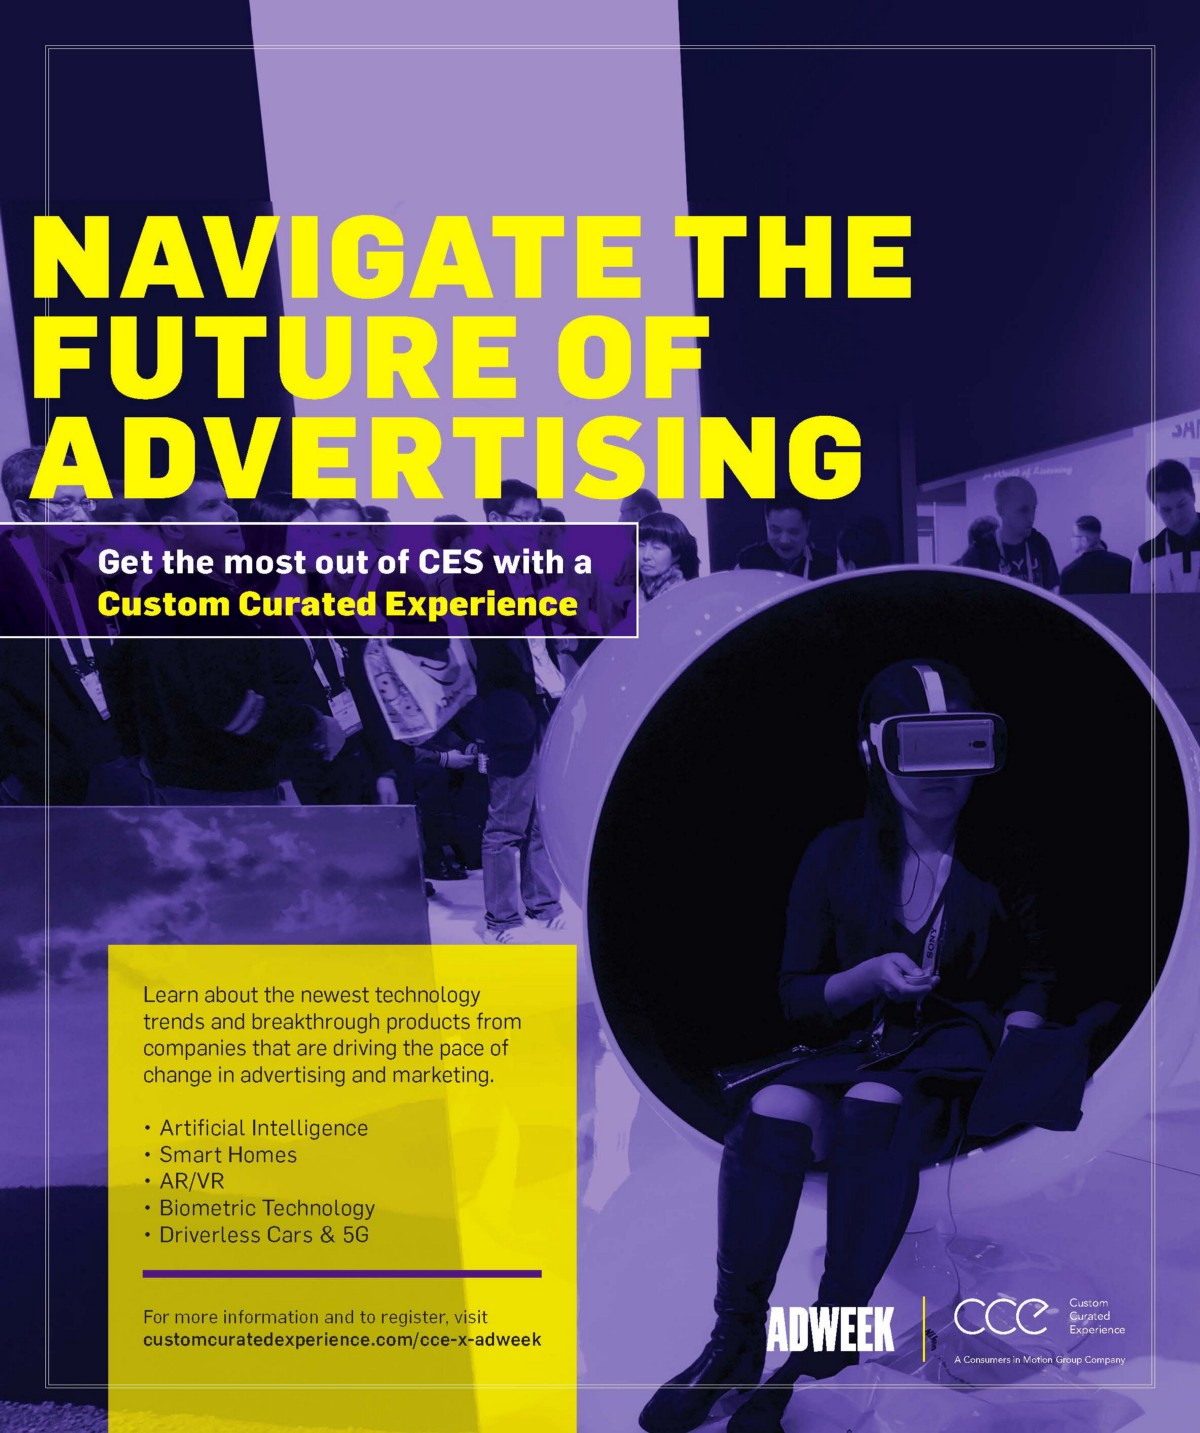 The CES 2018 Future of Advertising Tour - Consumers In